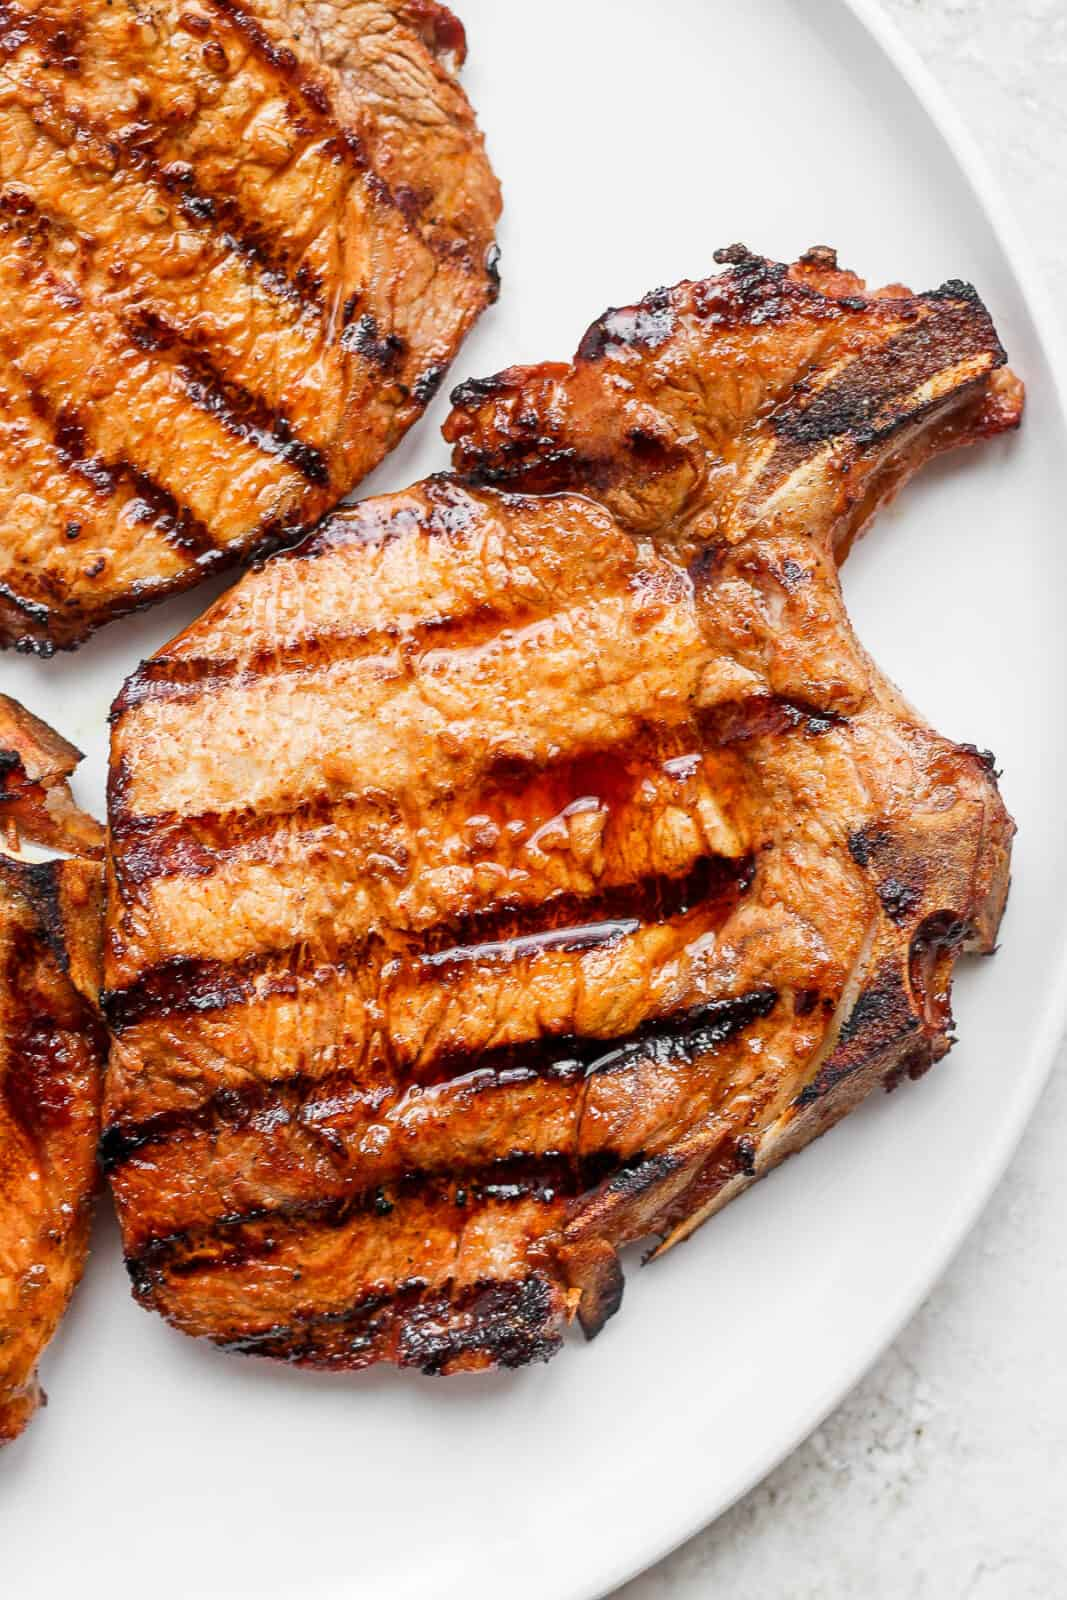 A grilled pork chop on a plate.